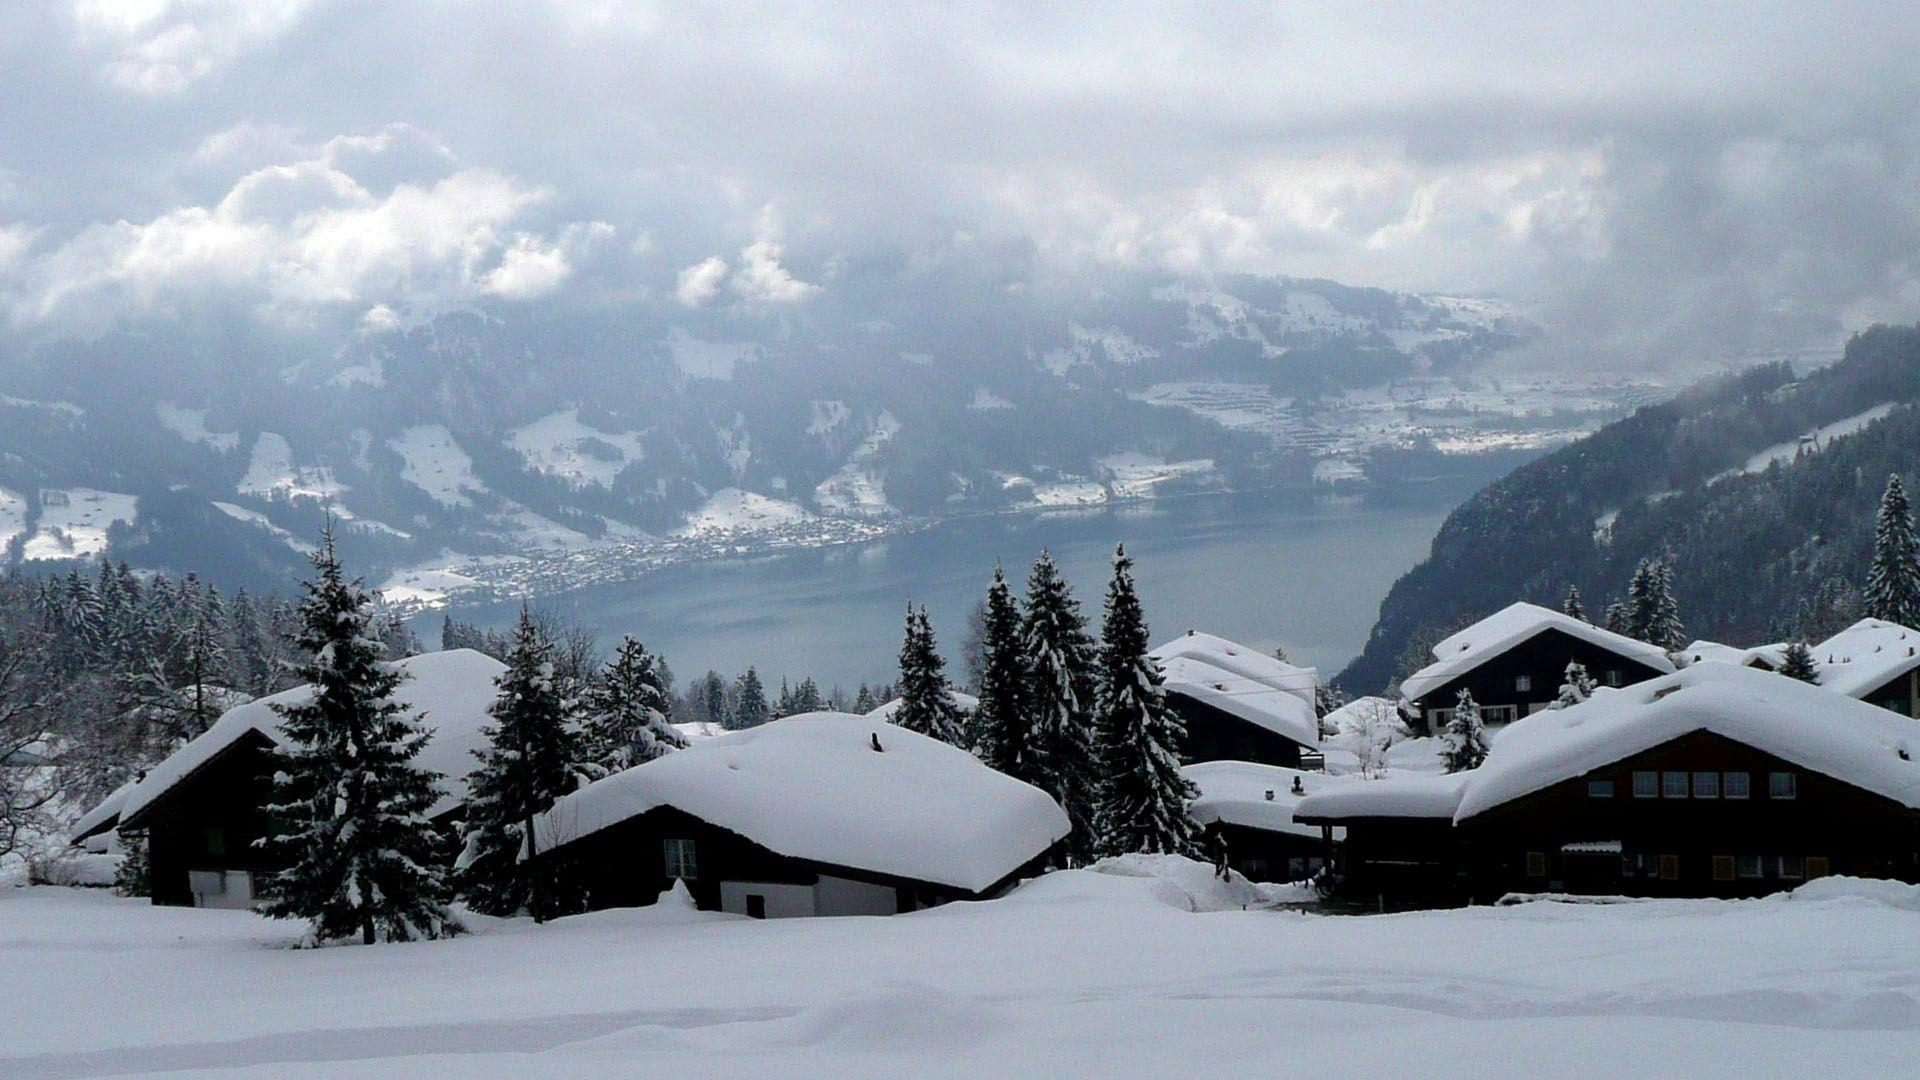 Switzerland Winter wallpaper - 287344